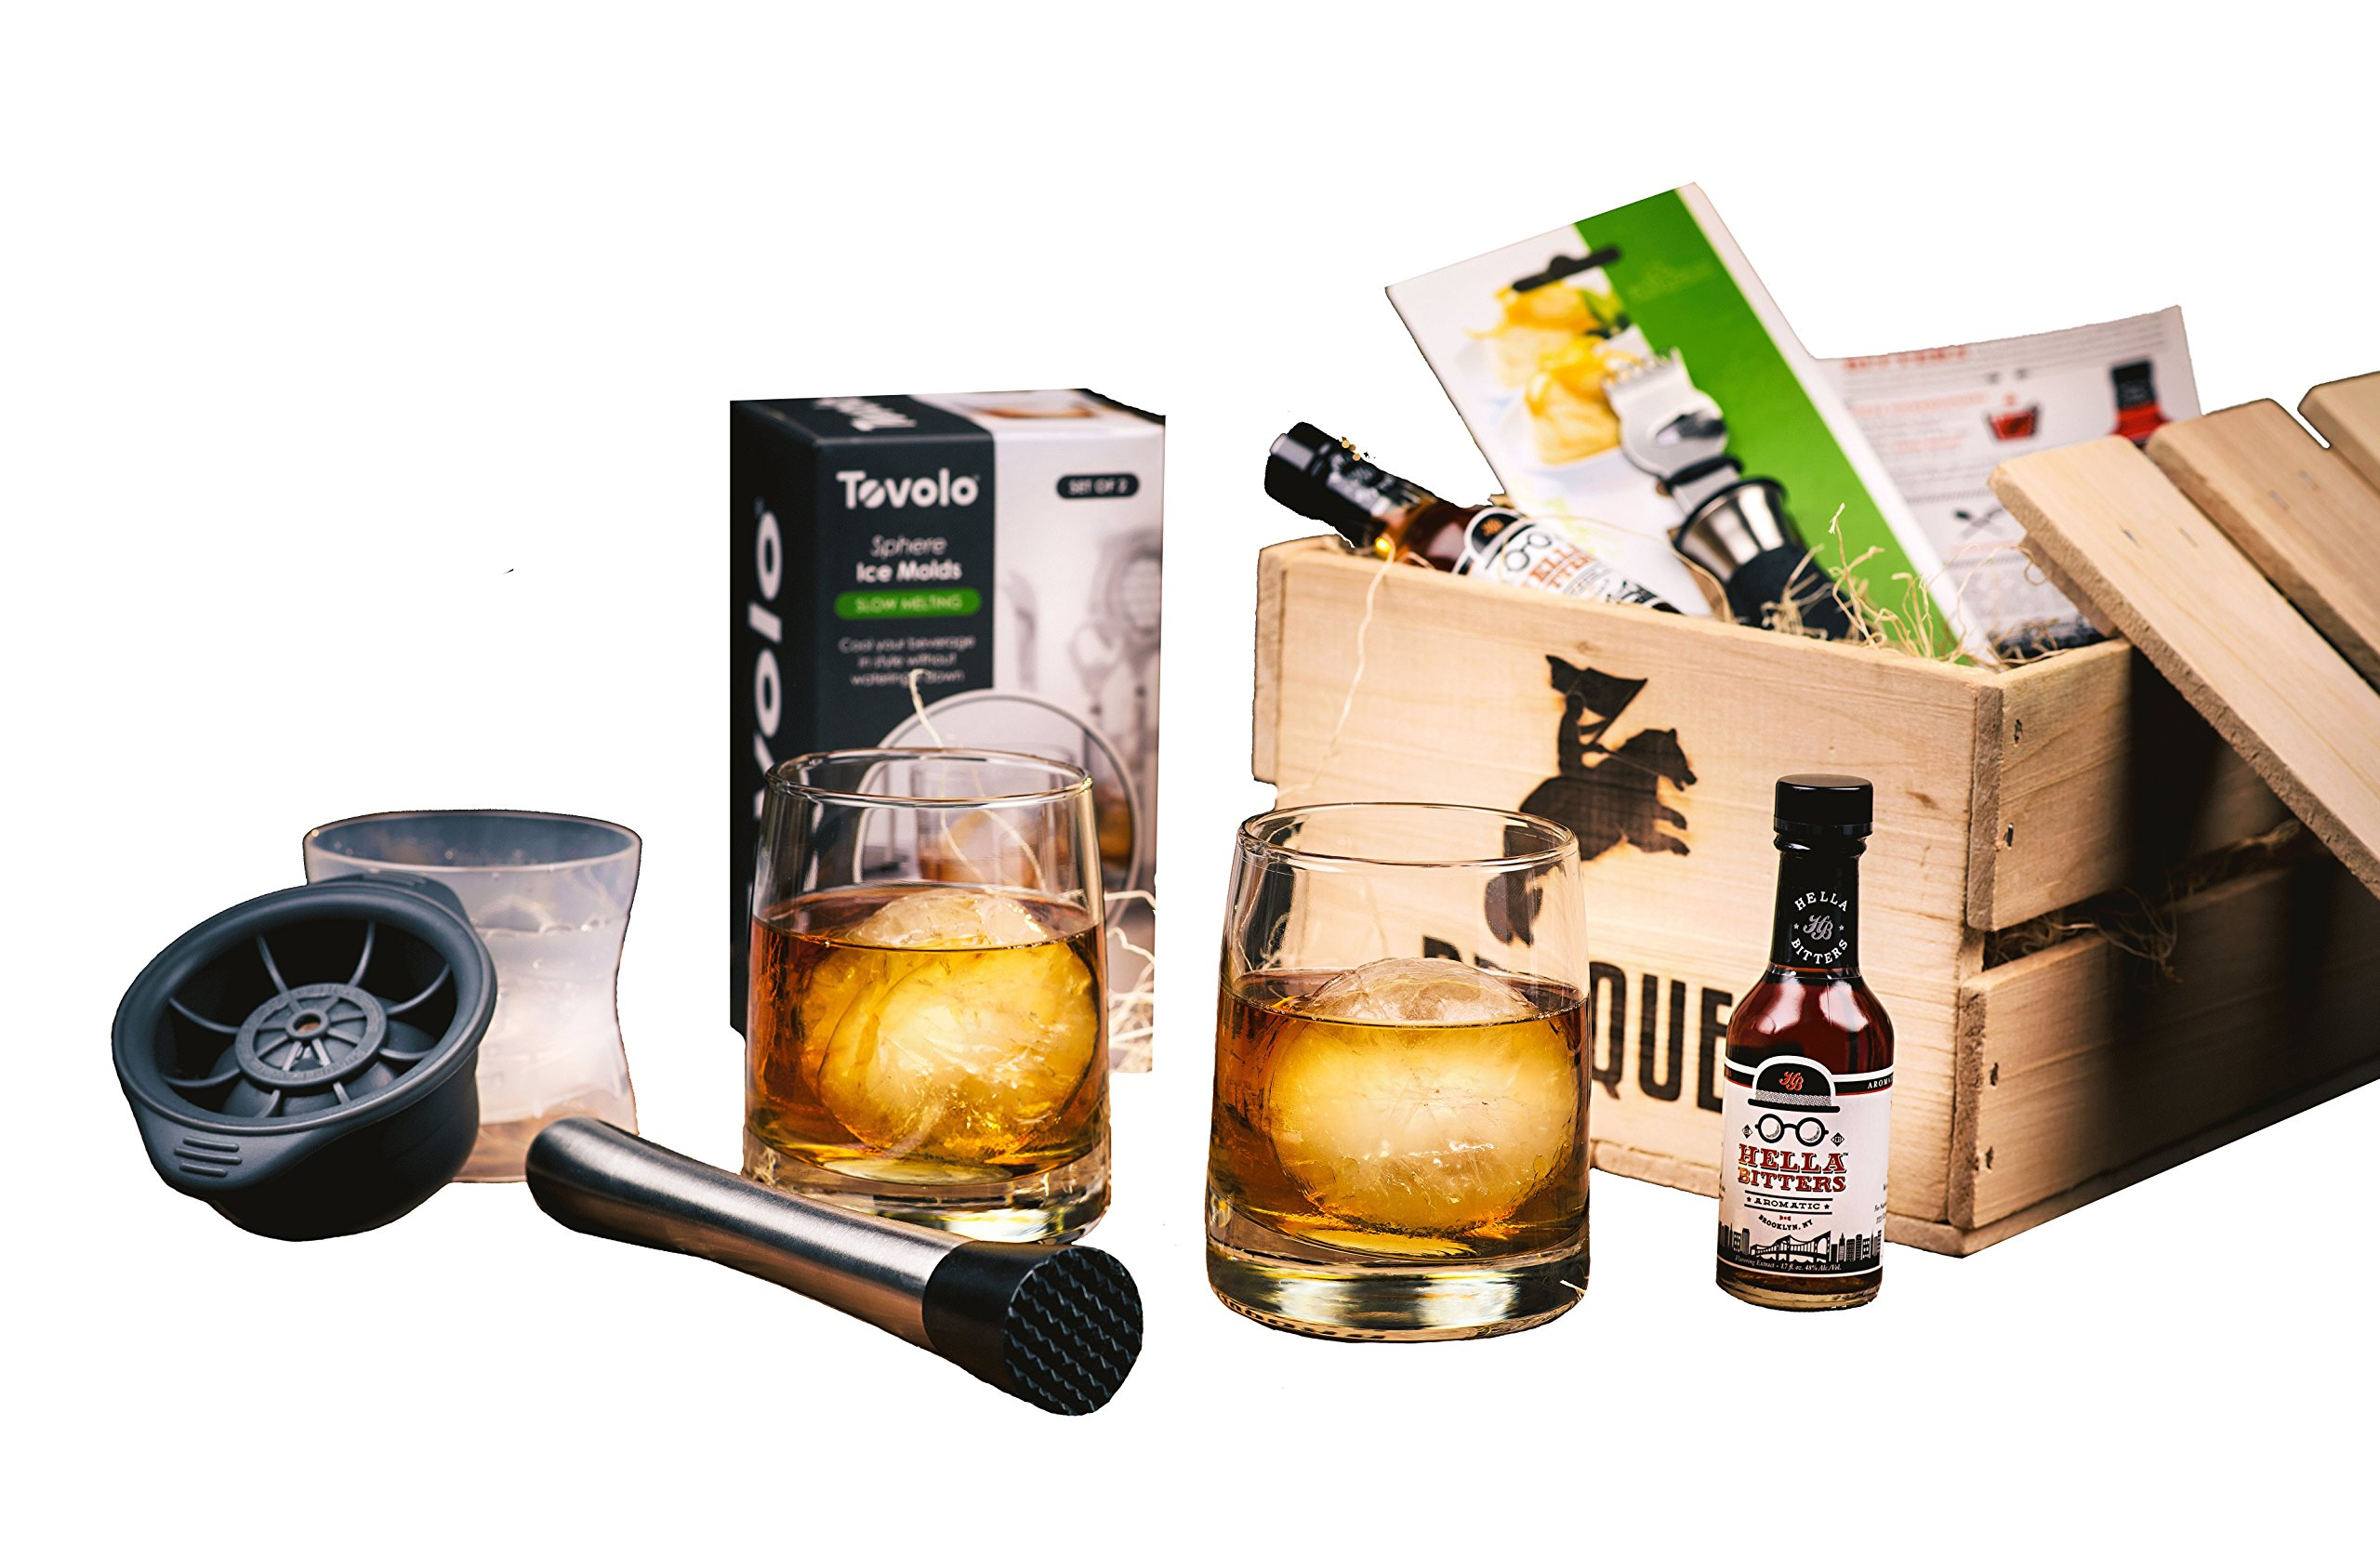 Old Fashioned Cocktail Kit Gift (7 Piece Drink Set) - Comes in a Wooden Gift Crate - Old-Fashioned Cocktail - Great Gift For Men